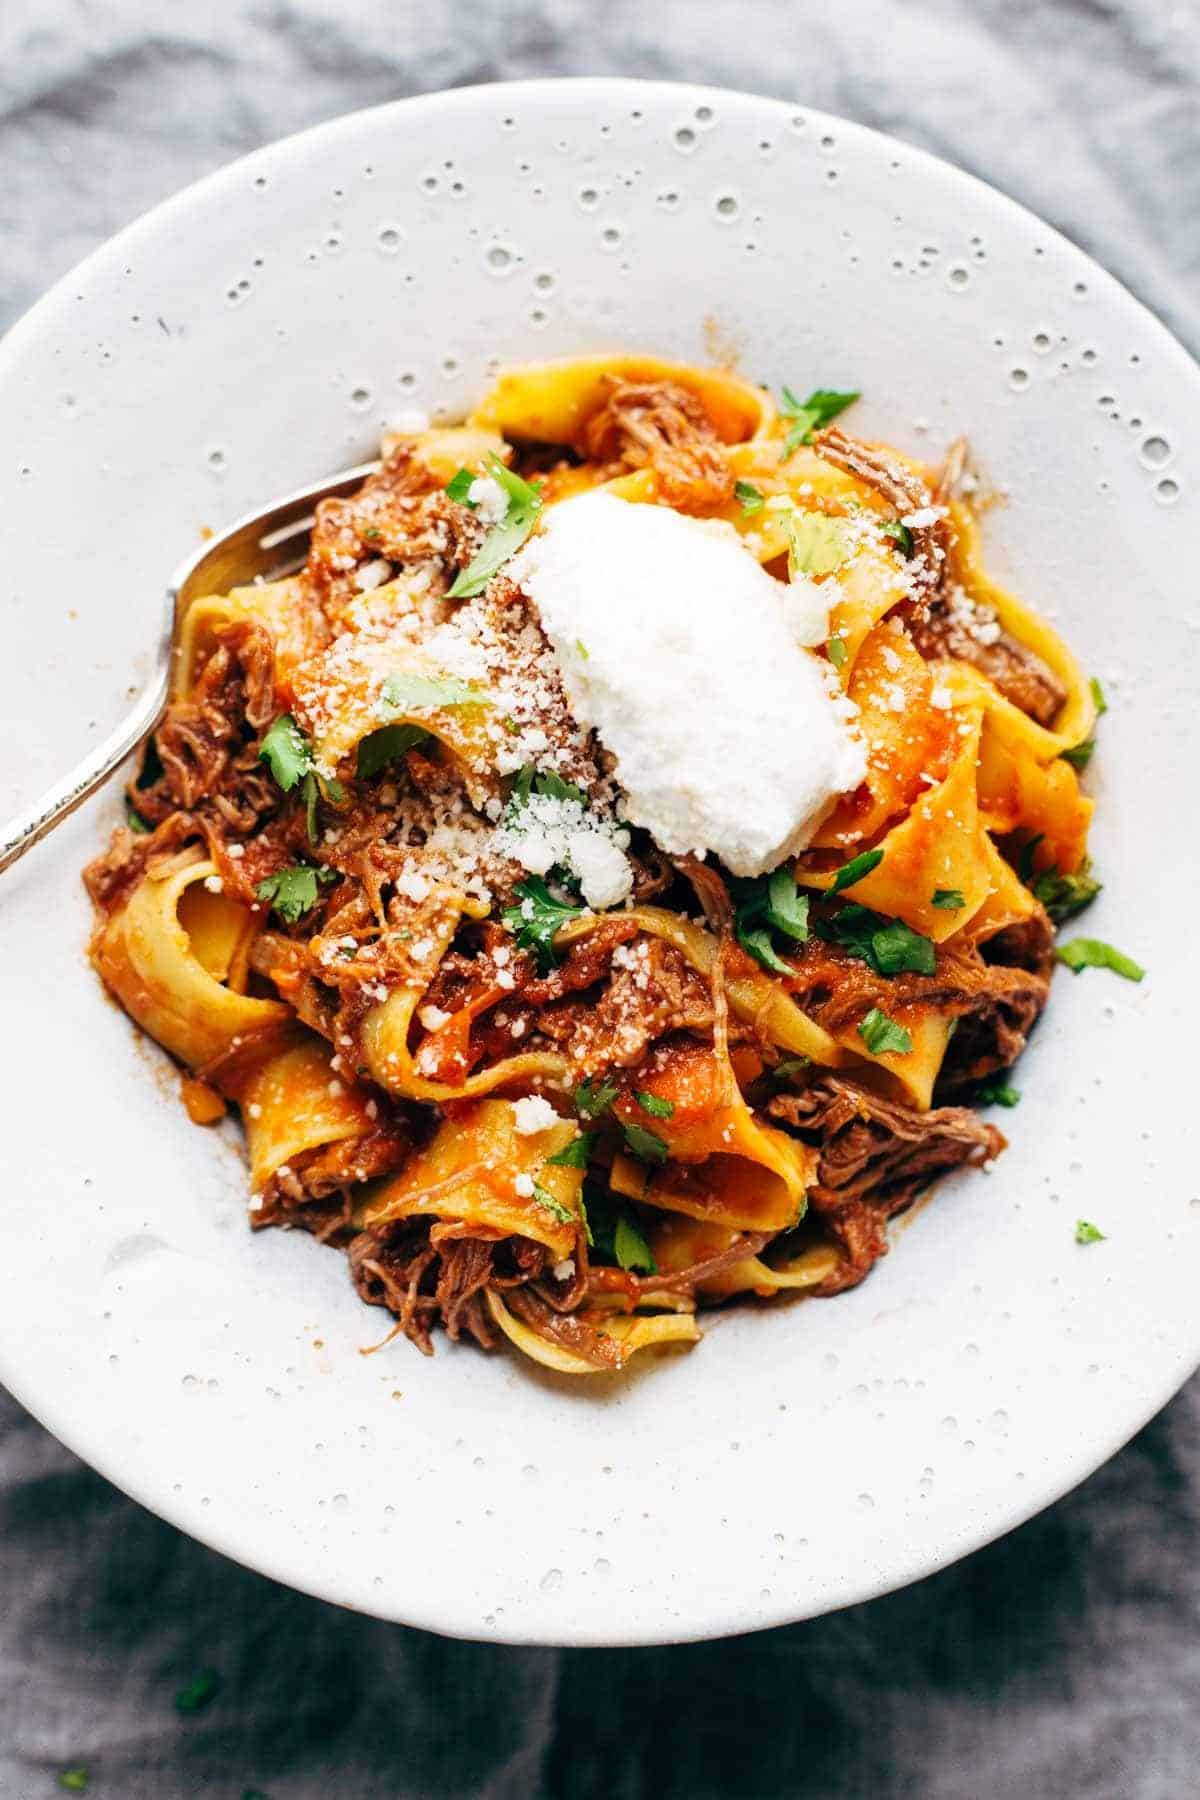 Slow Cooker Beef Ragu with Pappardelle in a bowl.